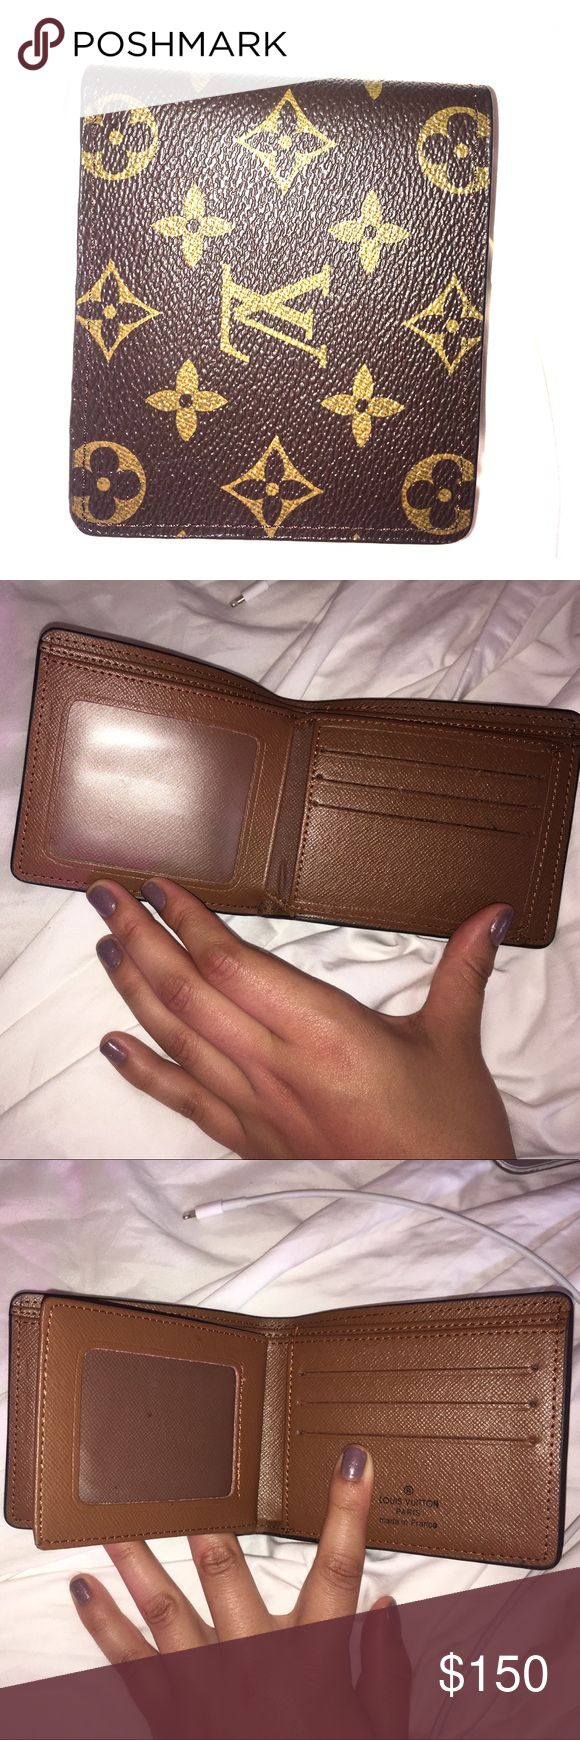 Louis Vuitton wallet Lightly used, like new Louis Vuitton wallet, price reflects authenticity. All pics are with flash, Very spacious and a great gift for yourself or a friend. No trades ❌ price isn't firm, make an offer 💕 I only communicate and sell through Poshmark 😊 Louis Vuitton Accessories